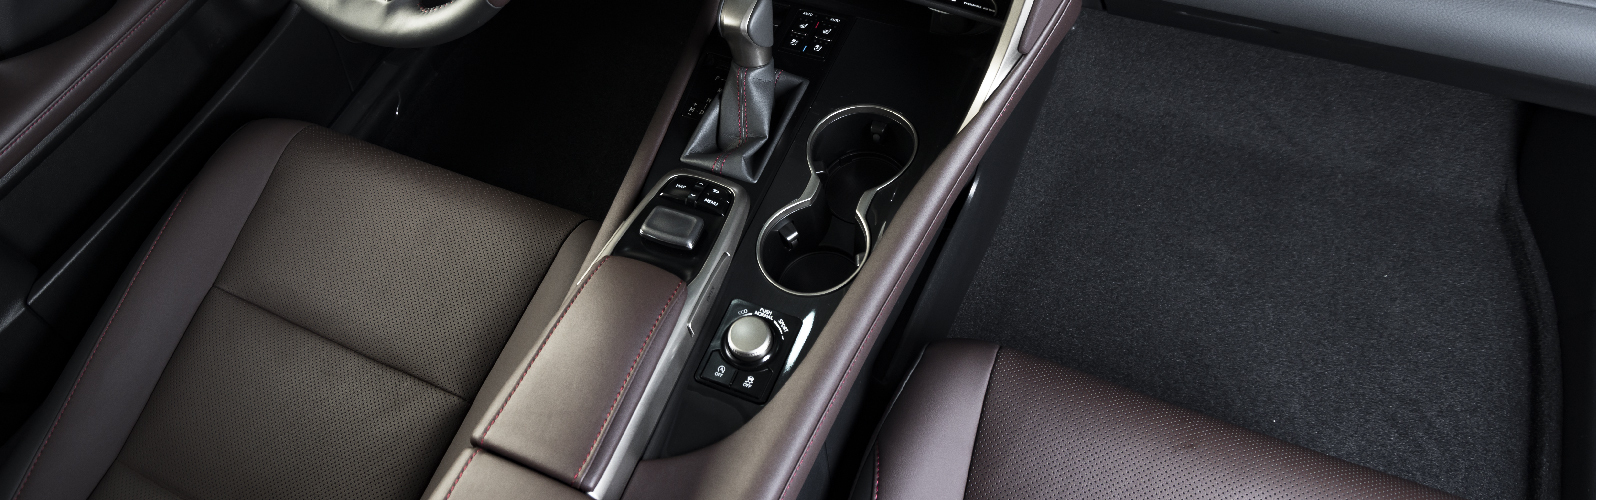 center console of a vehicle